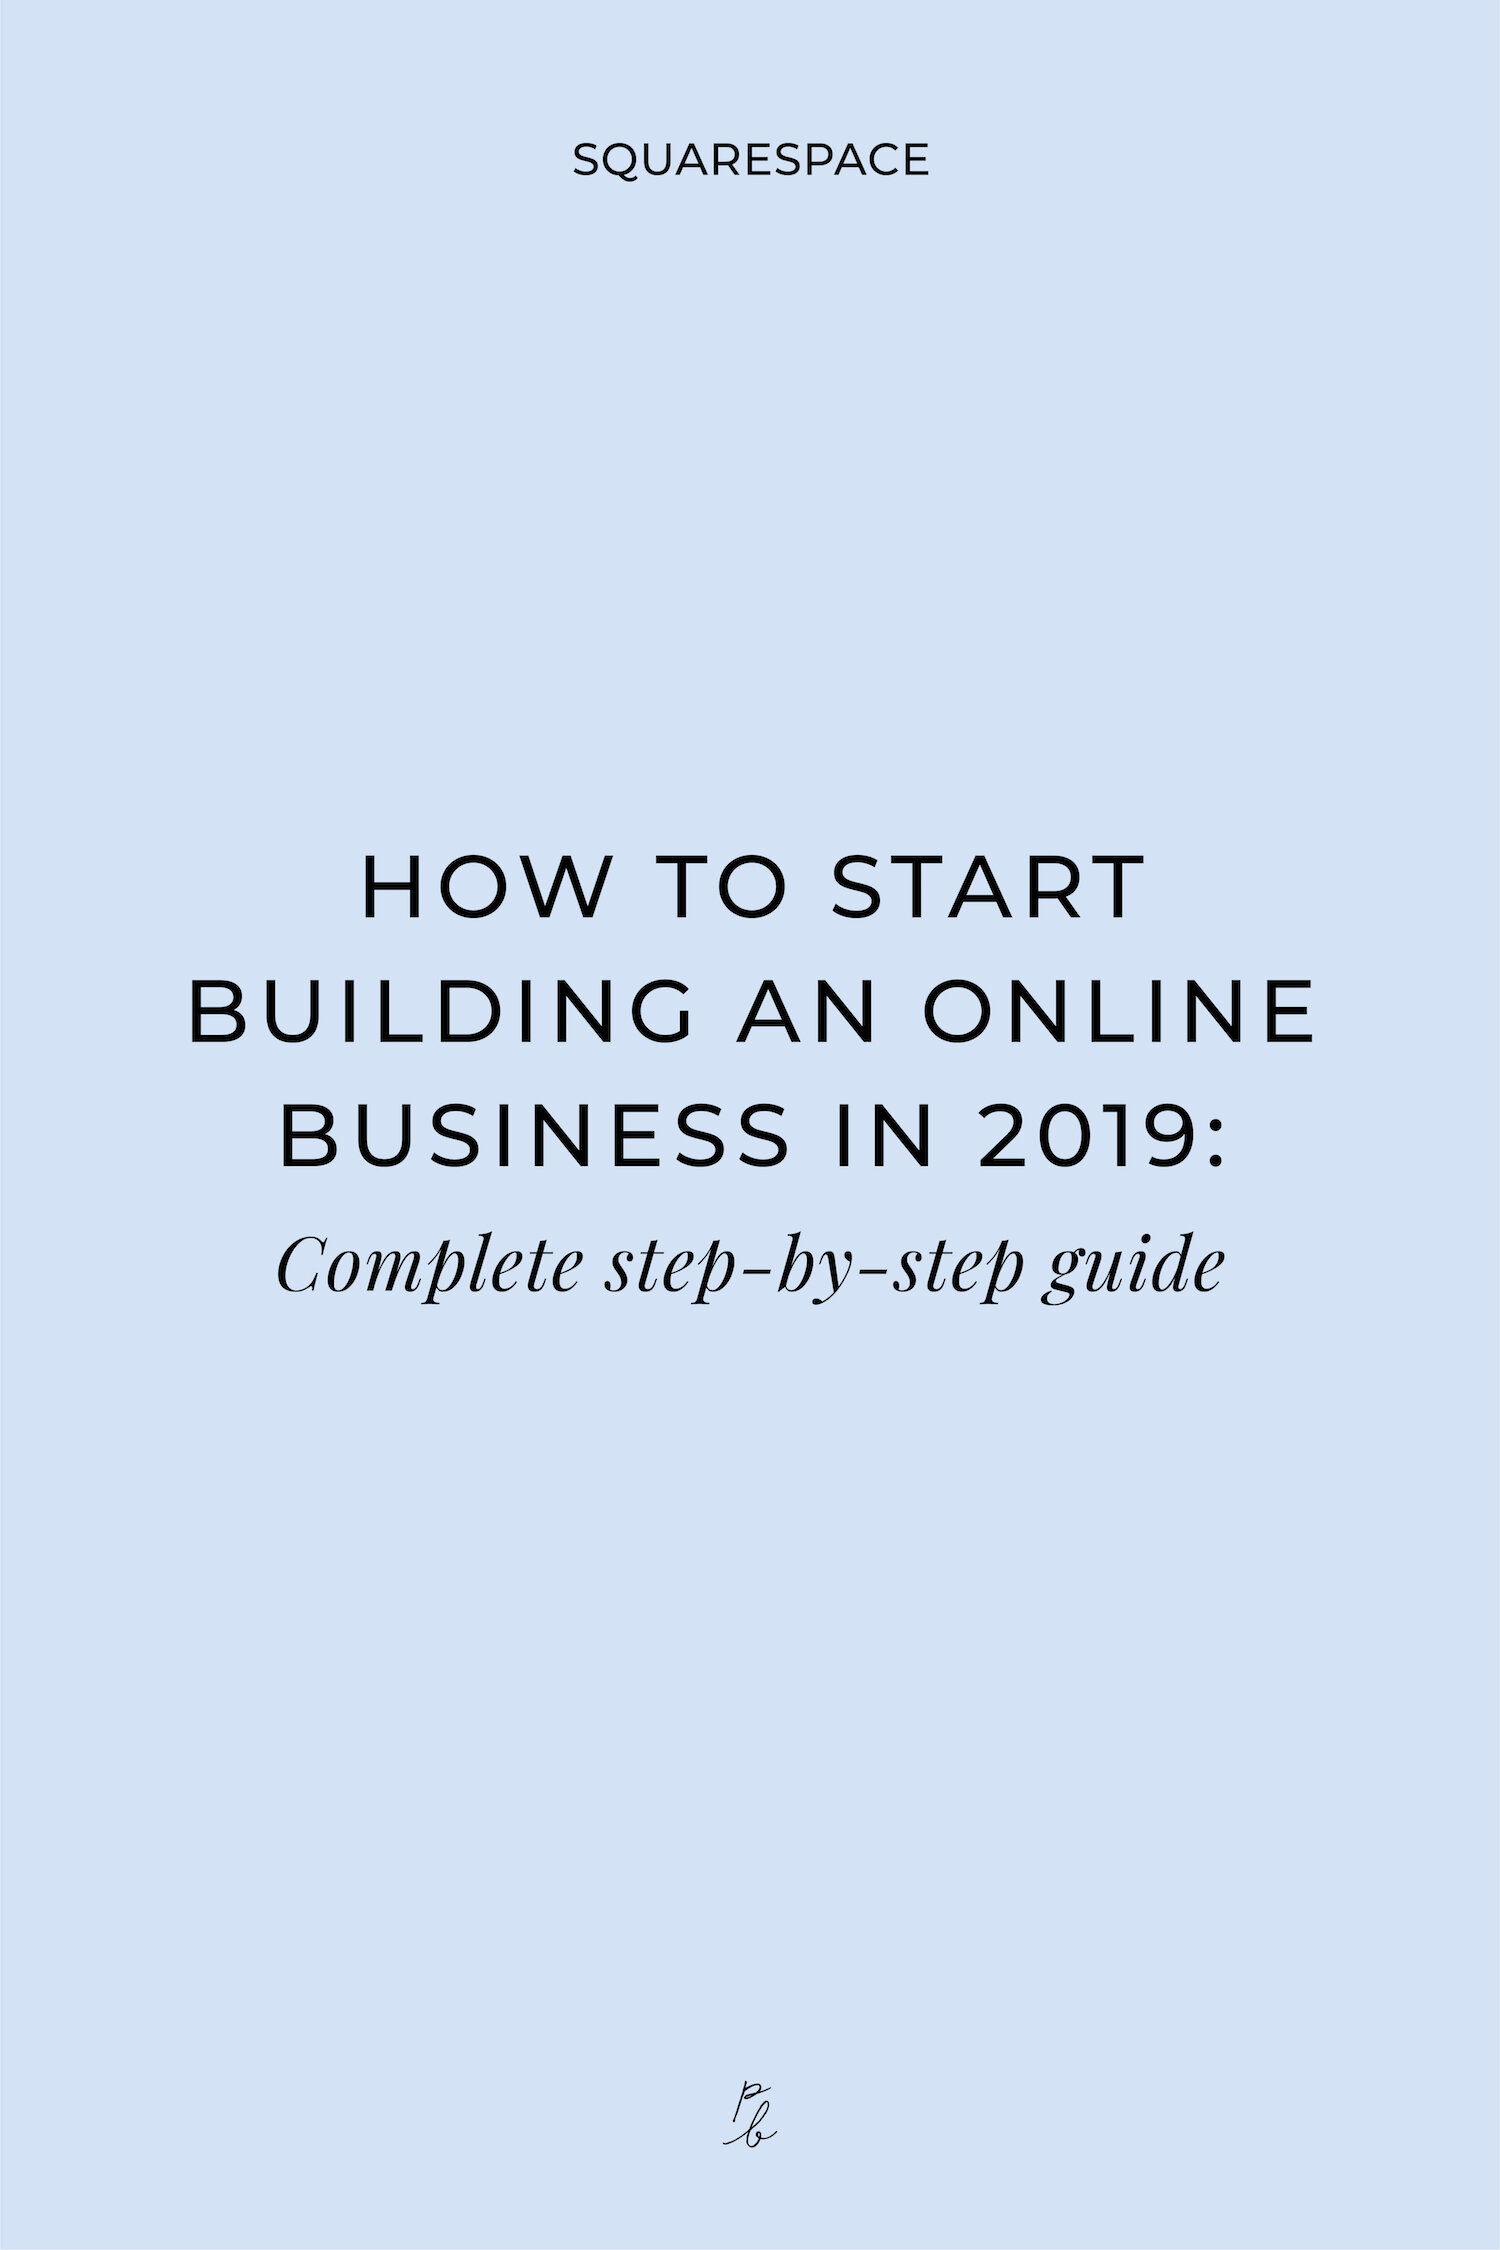 How to start an online business in 2019- Complete step-by-step guide-03.jpeg